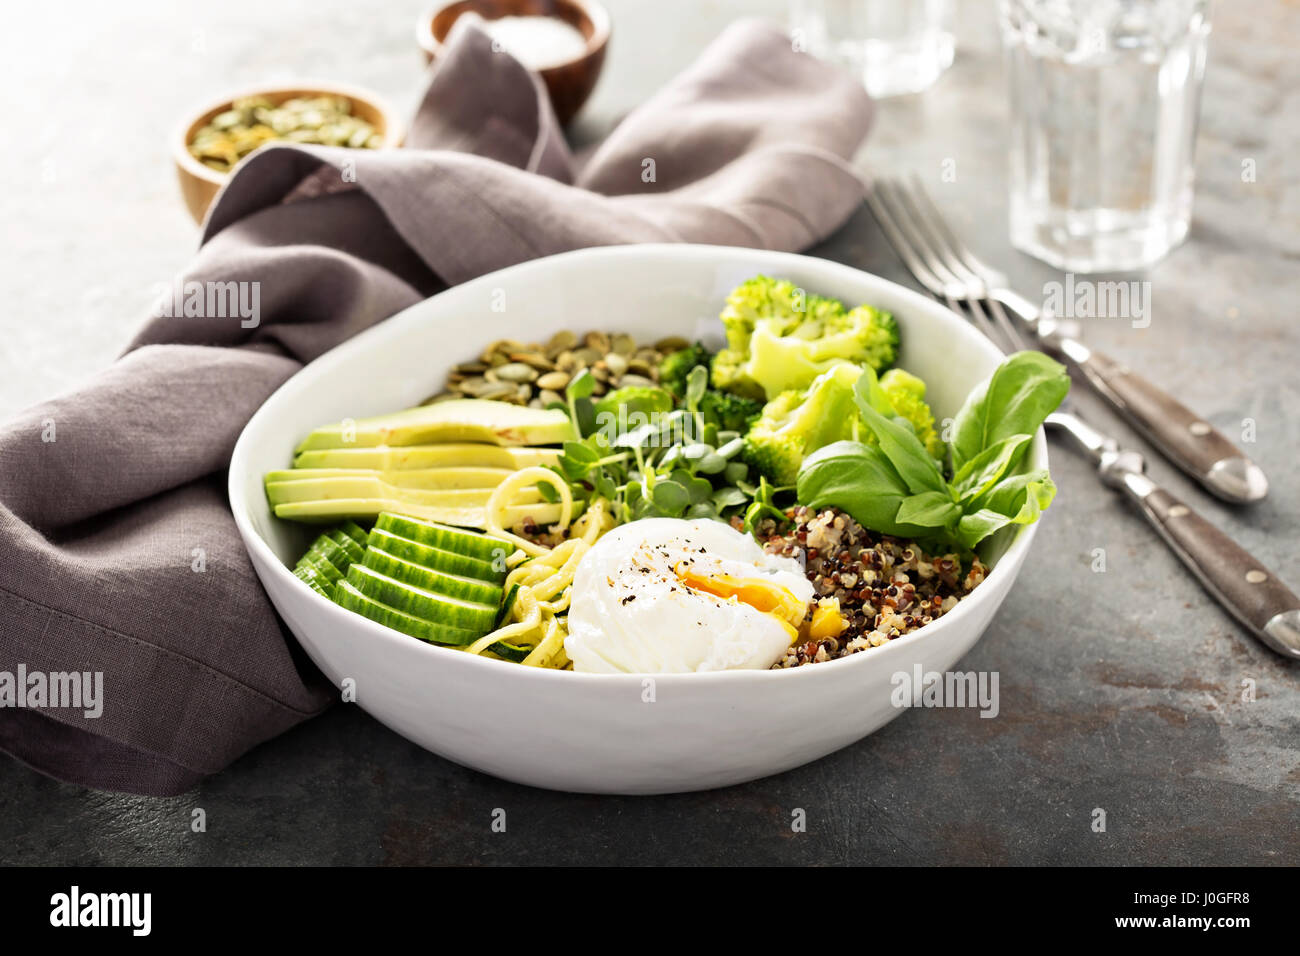 Green and healthy grain bowl - Stock Image